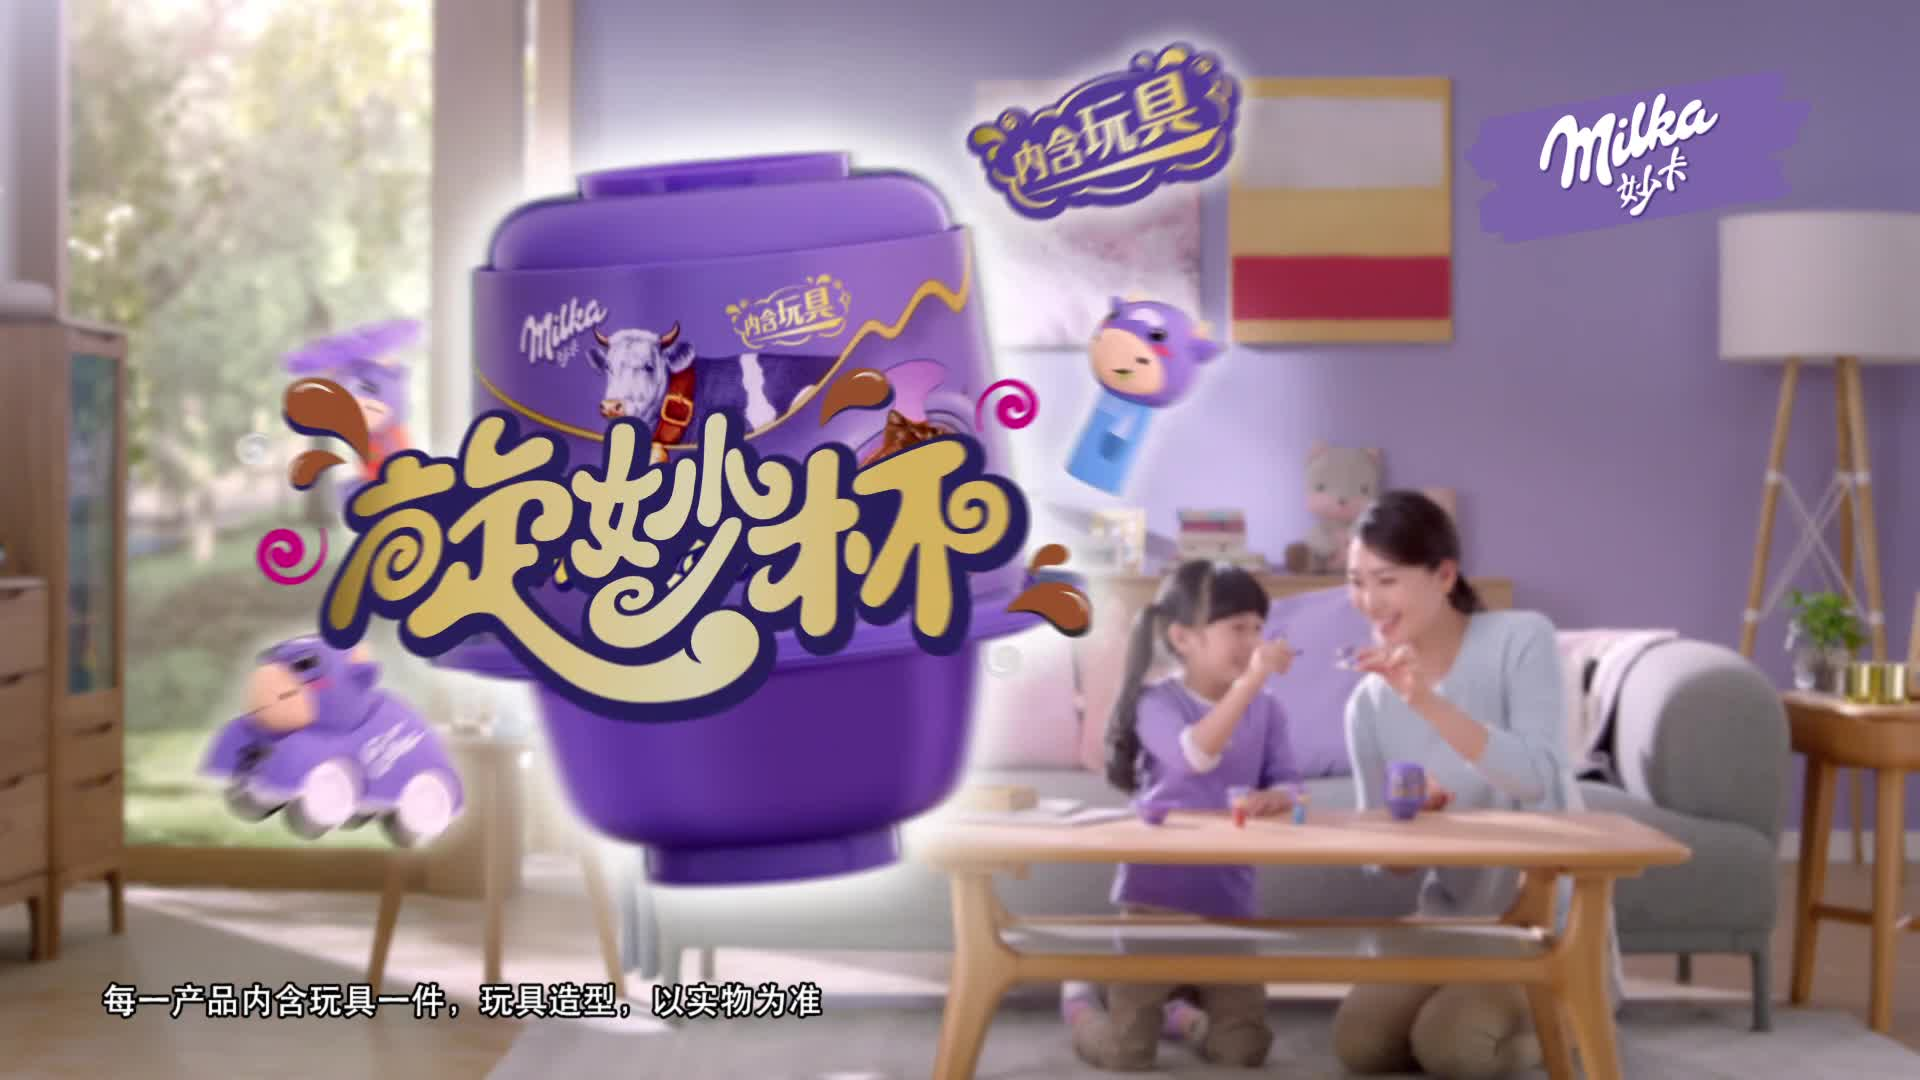 Milka Launches New Product Magic Cup with a Meaningful Chinese Name 旋妙杯